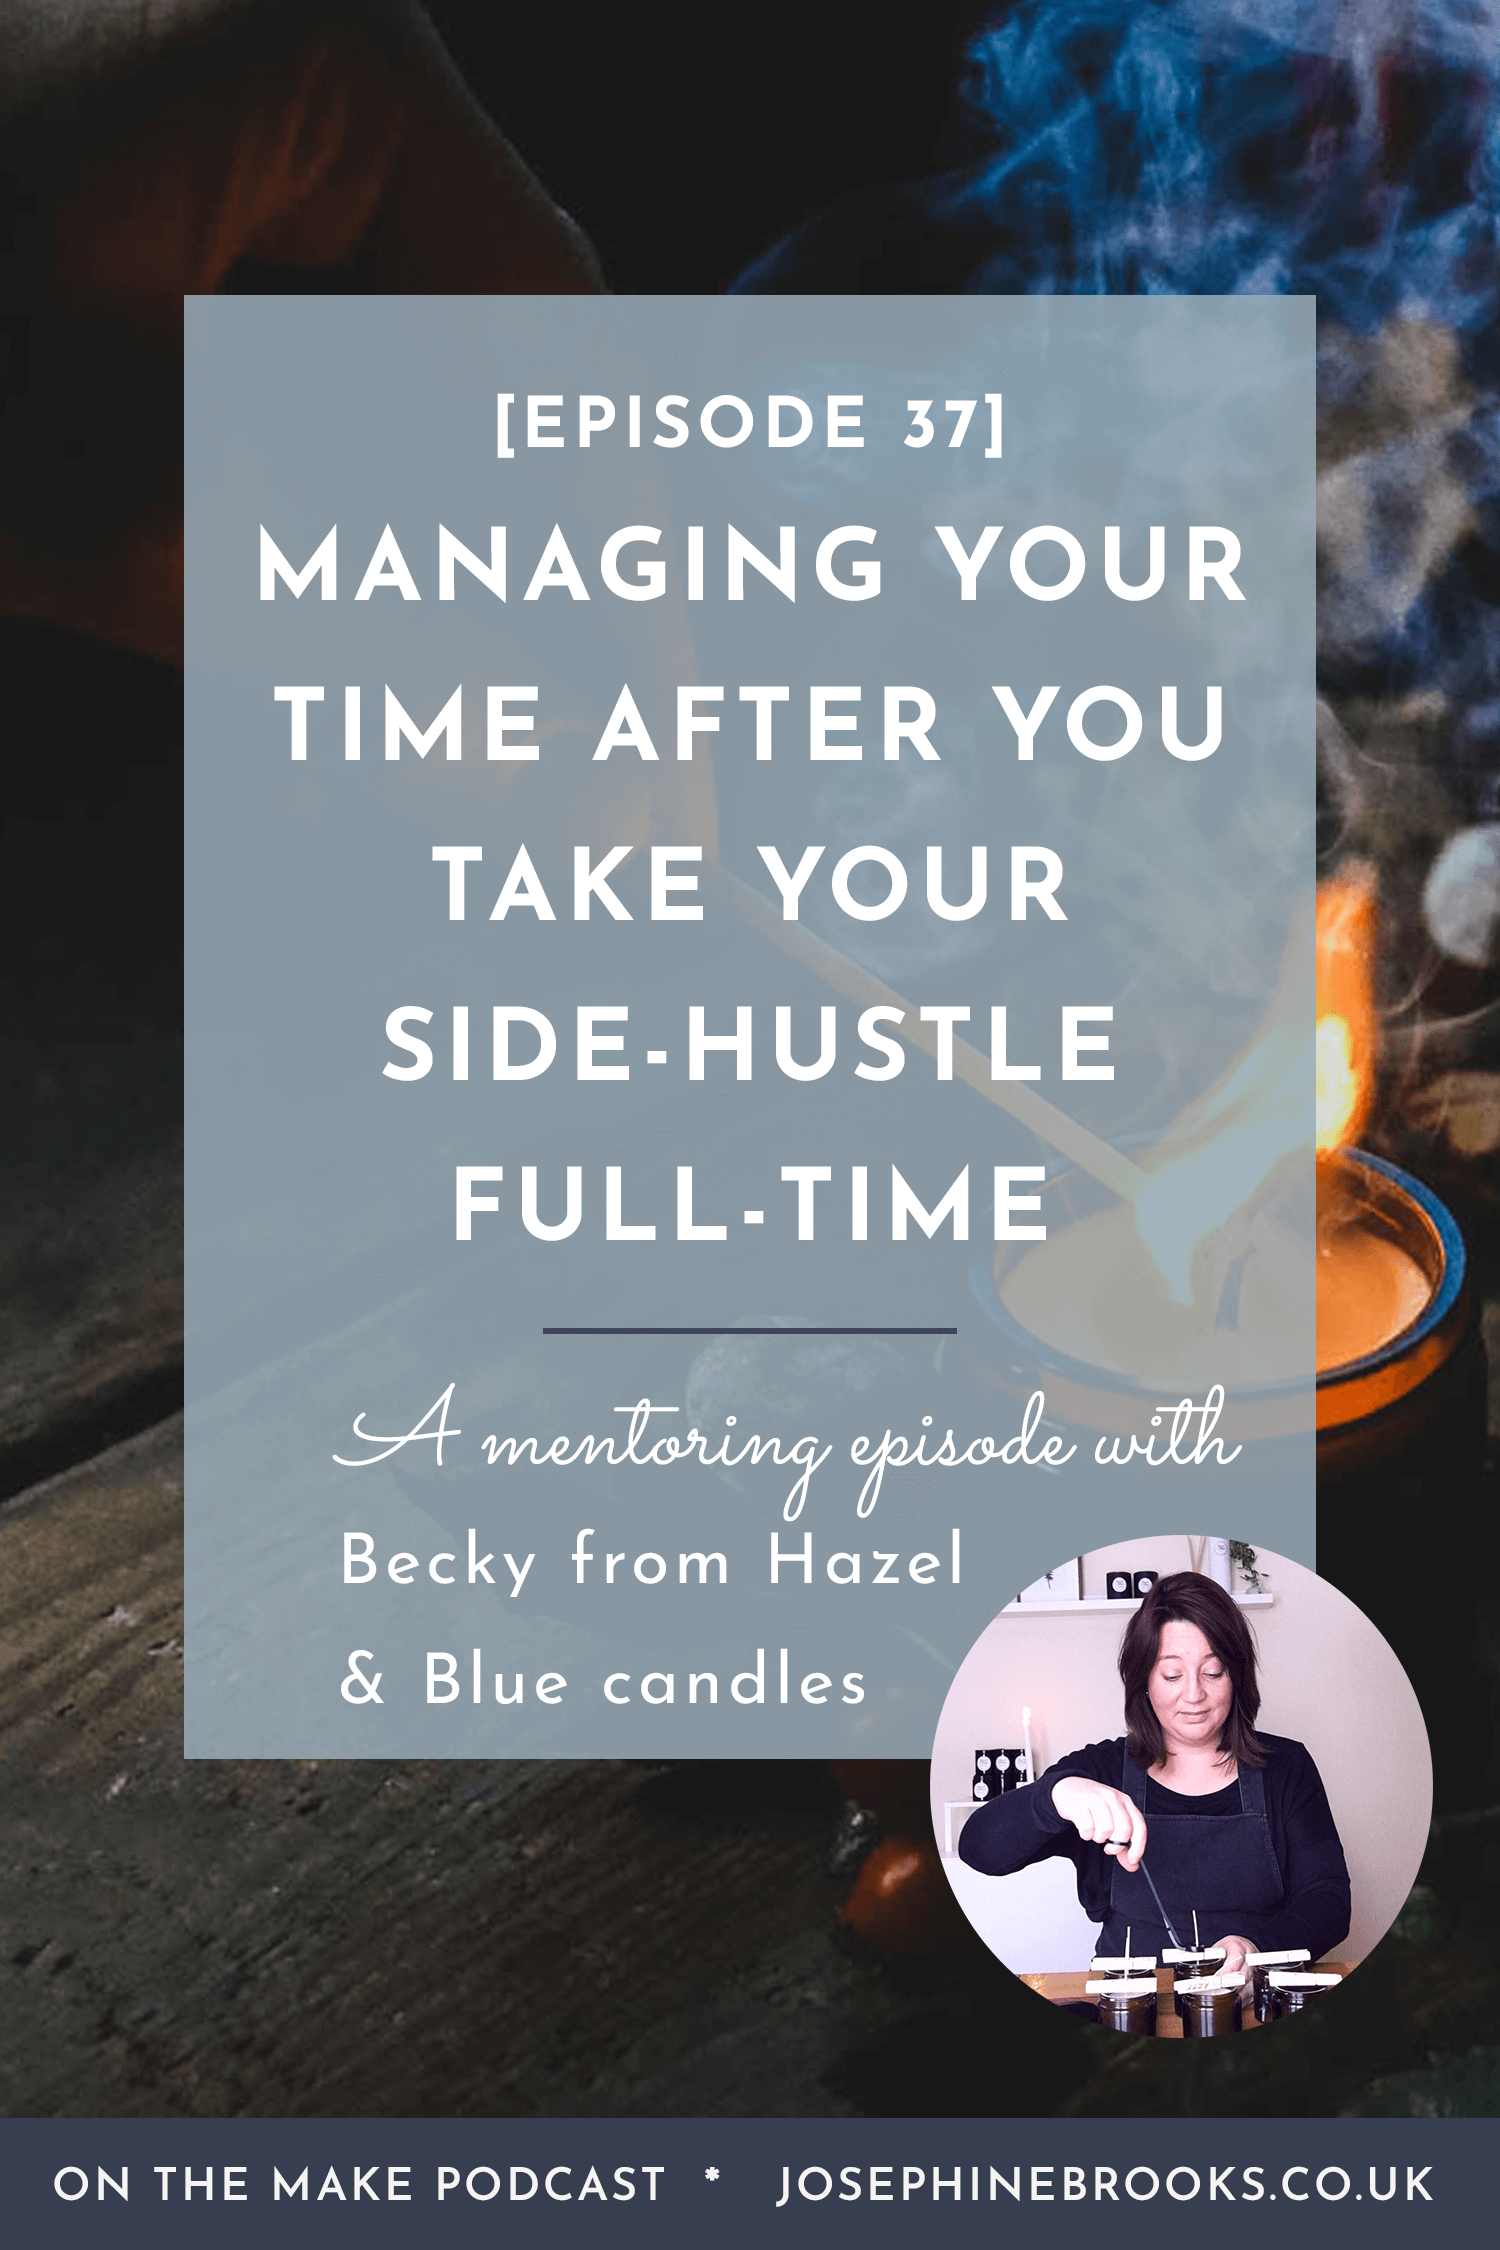 [37] On Managing Your Time Effectively After You Take Your Side-Hustle Full-Time with Becky from Hazel & Blue Candles - Episode 37 of On The Make podcast hosted by Josephine Brooks